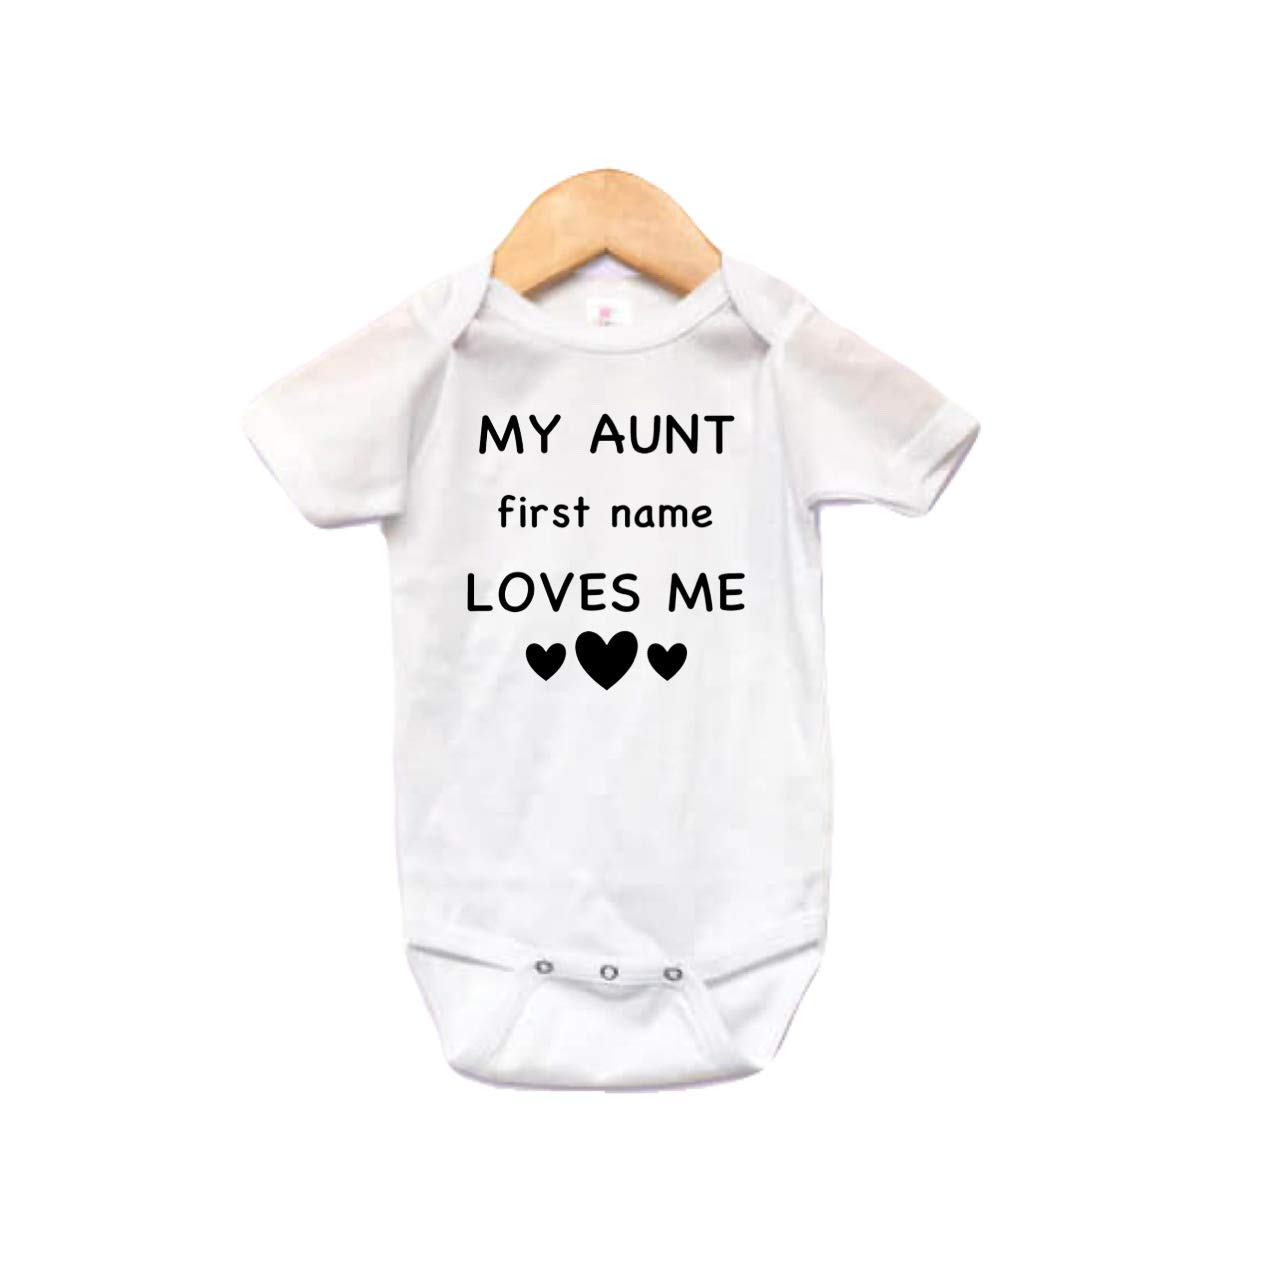 My aunt latest loves Max 68% OFF me baby bodysuit